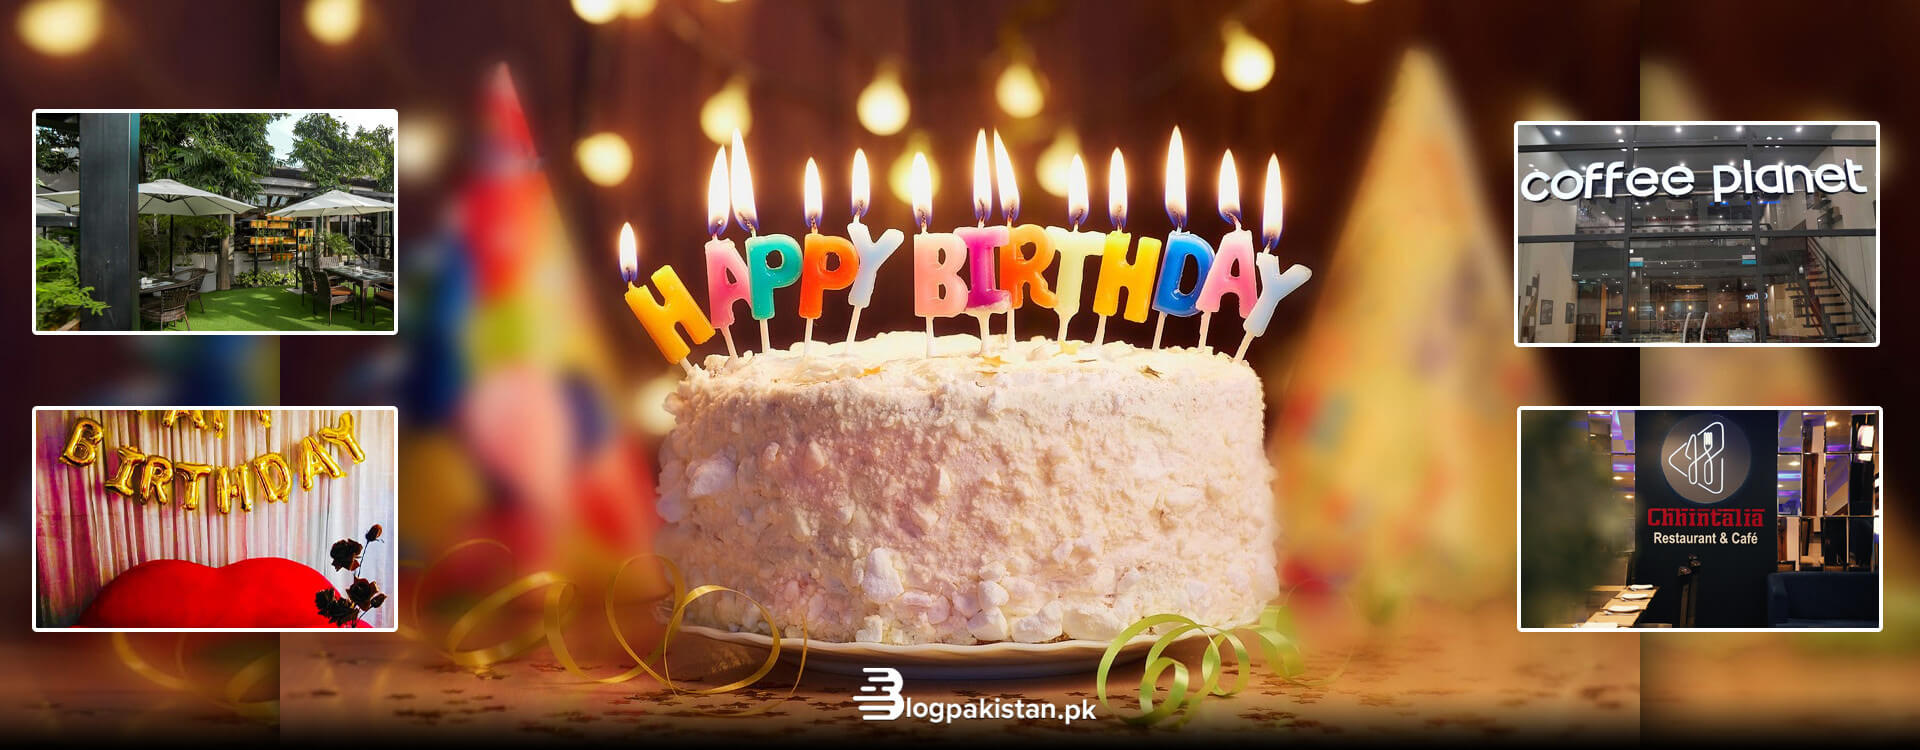 10 Best Birthday Celebration Places in Lahore to Host an Amazing Party